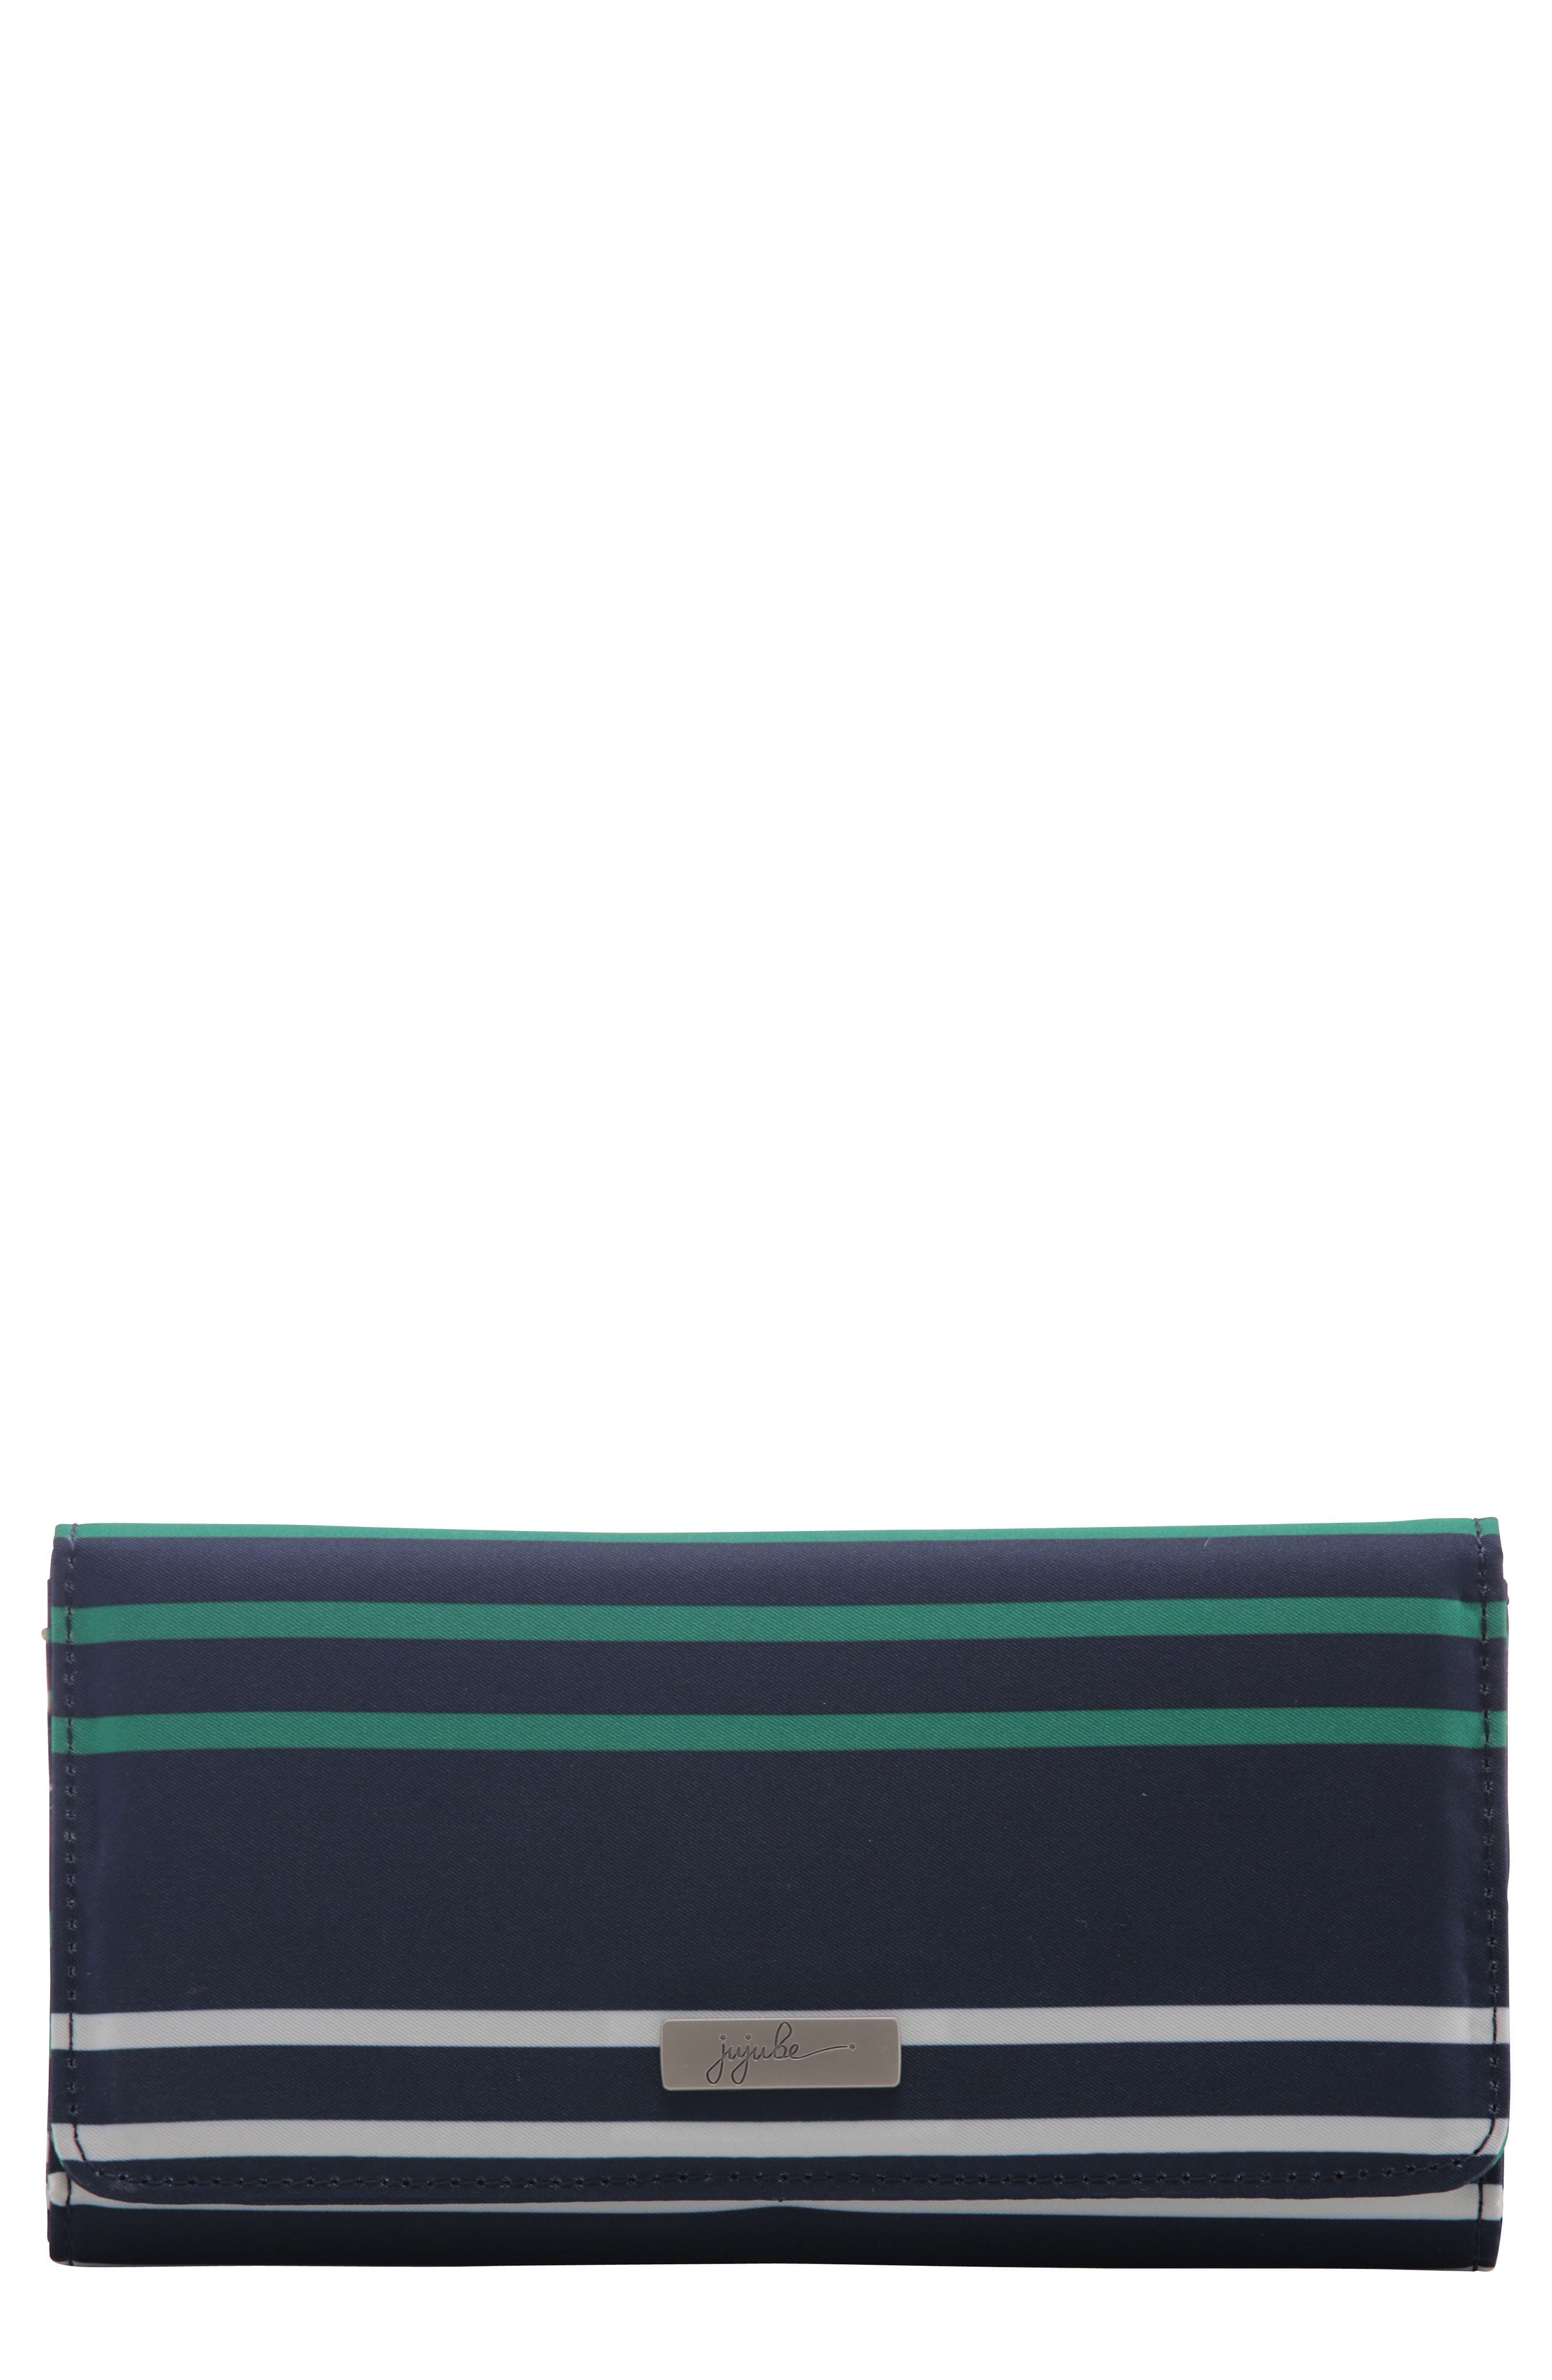 Be Rich - Coastal Collection Trifold Clutch Wallet,                             Main thumbnail 1, color,                             PROVIDENCE